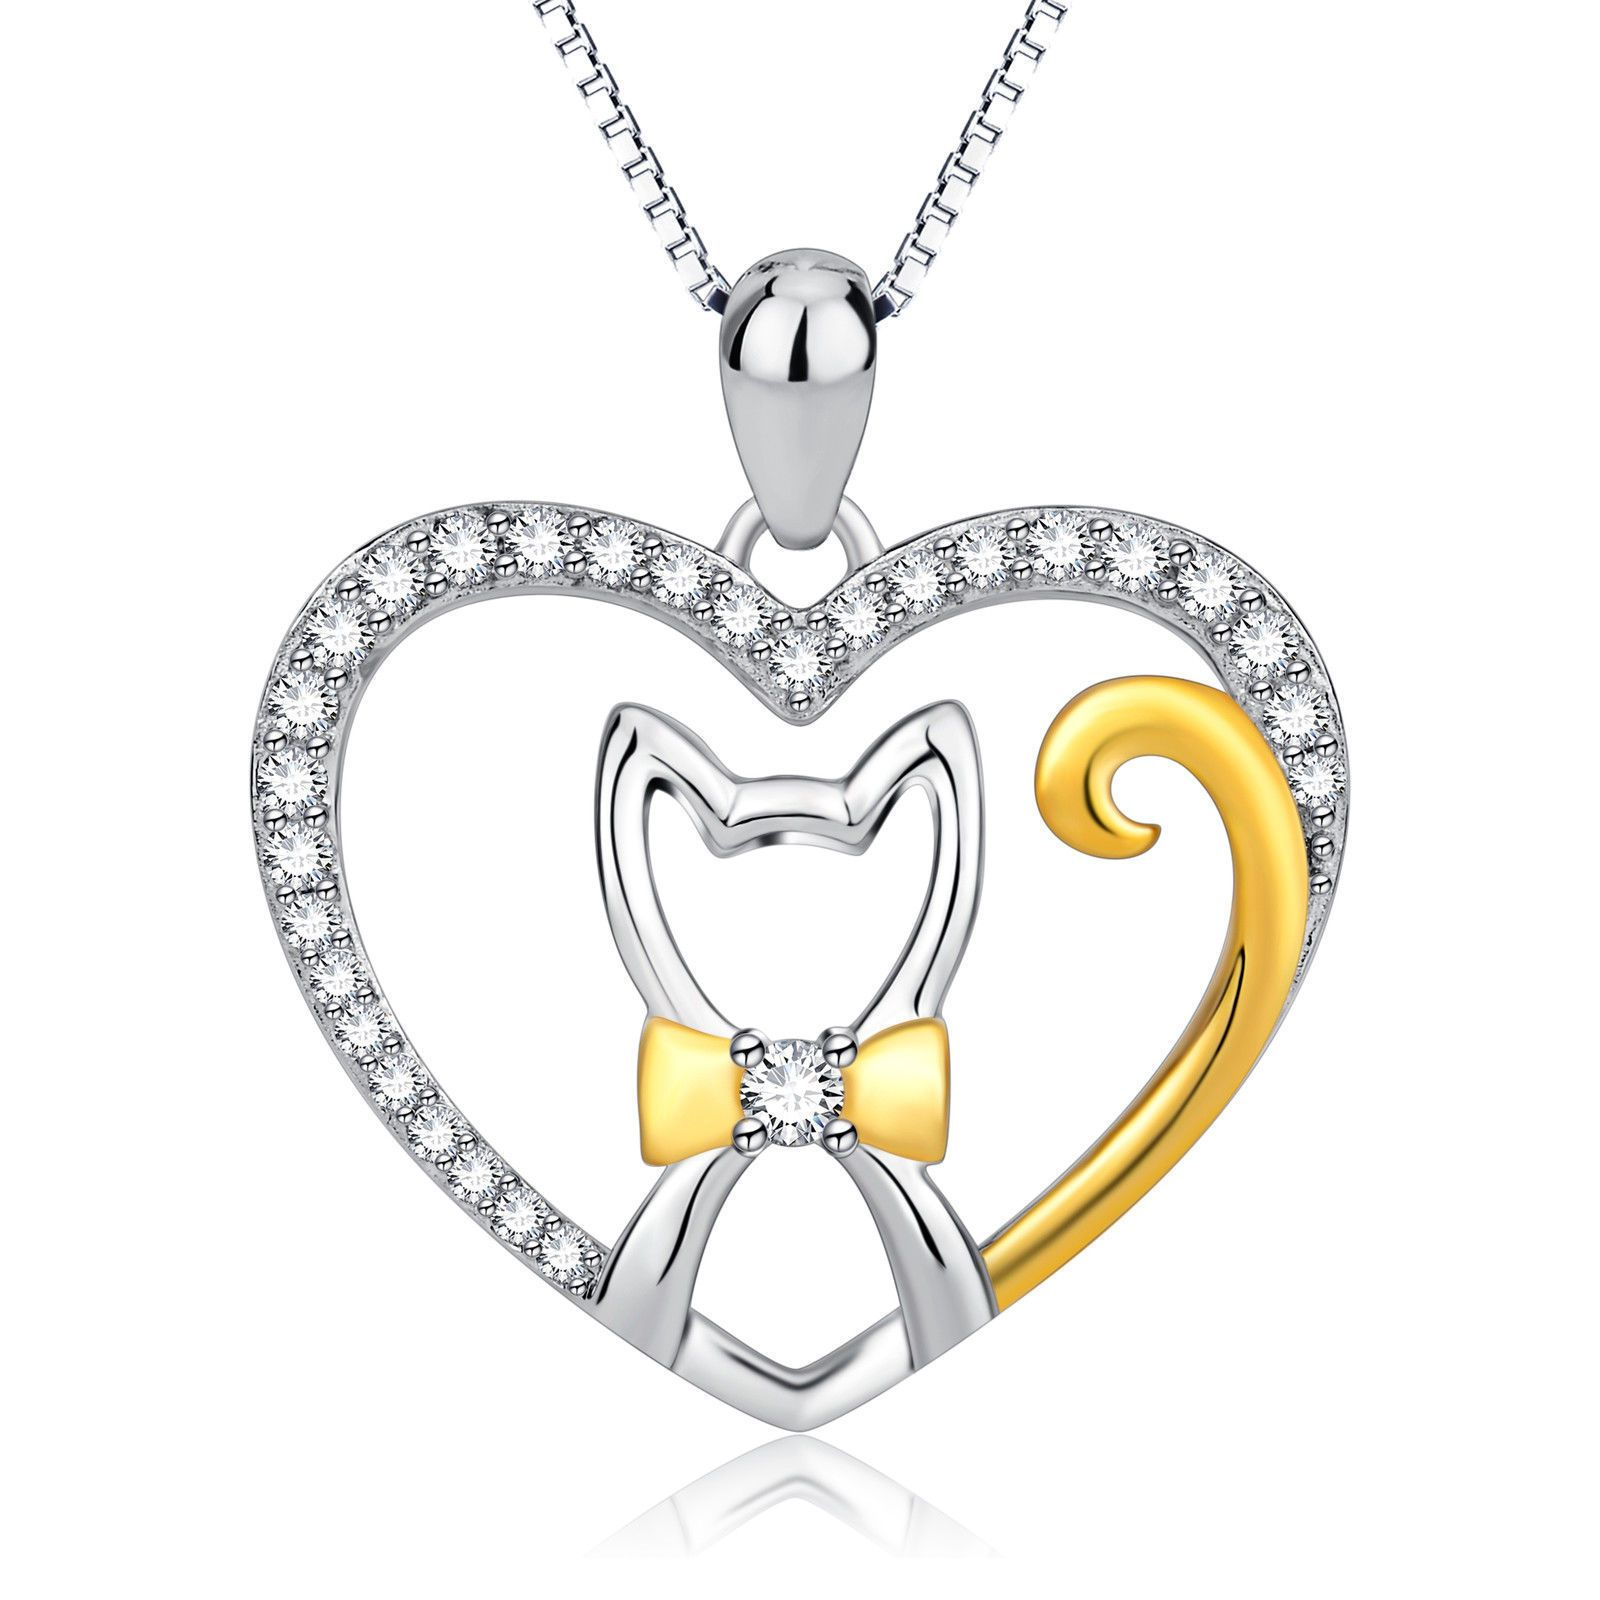 Fashion Jewelry Women Girl Silver Chain Lovely Cat Pendant Necklace Cute Gift